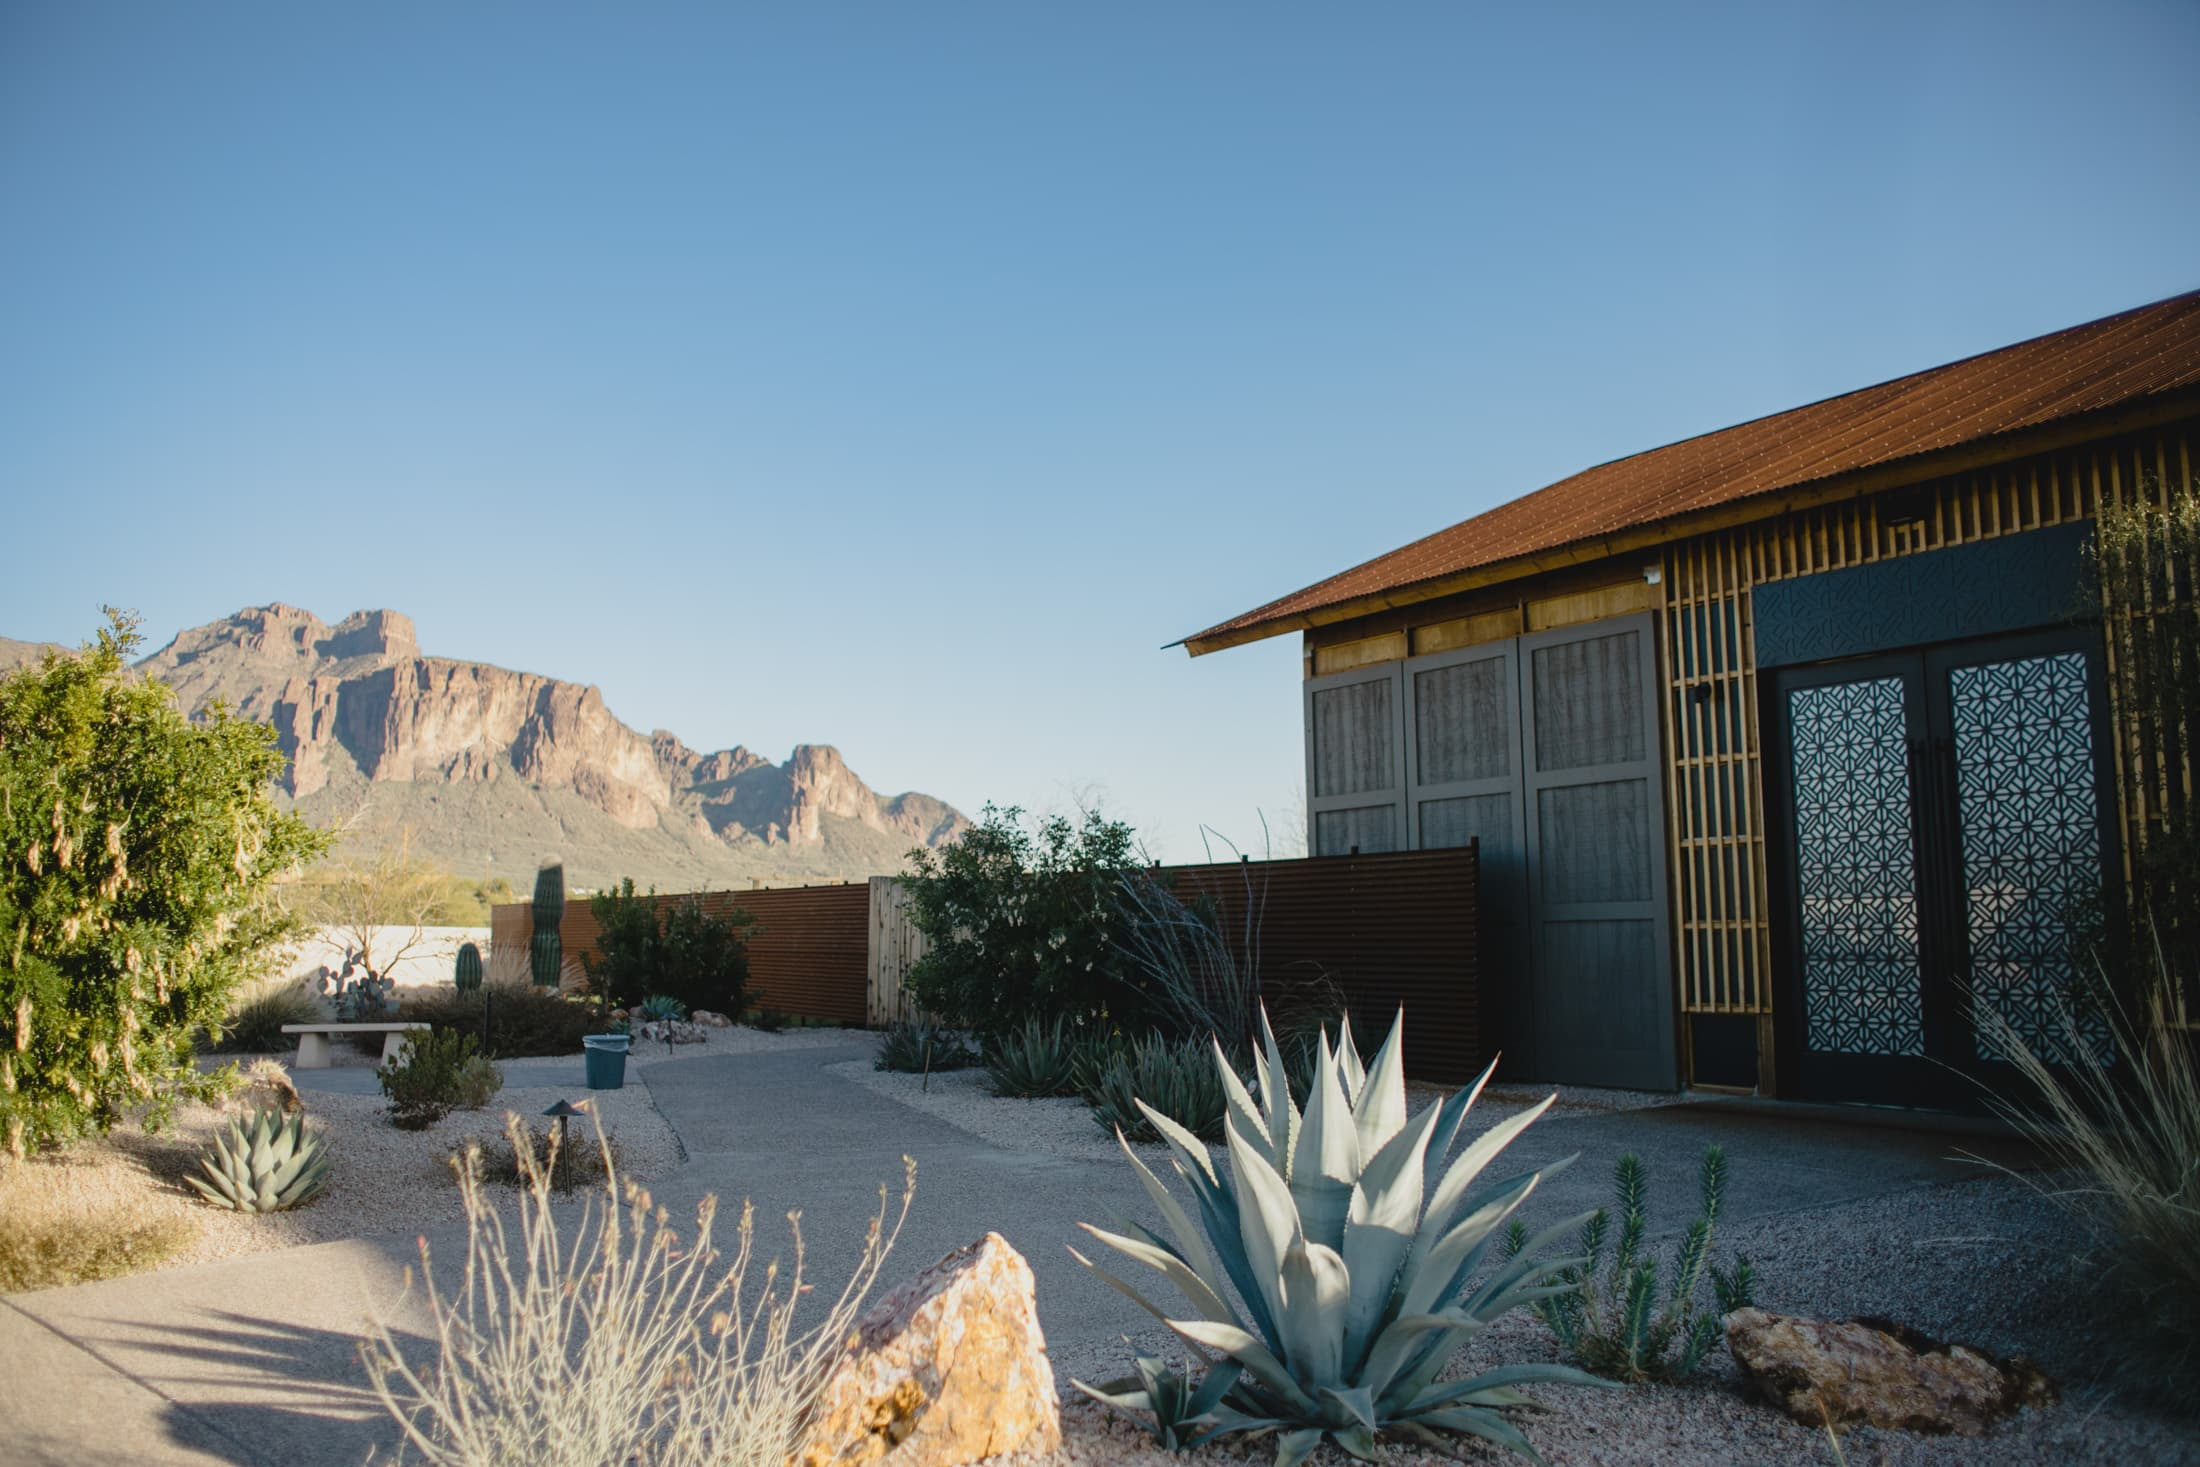 The Paseo wedding venue Superstition Mountains